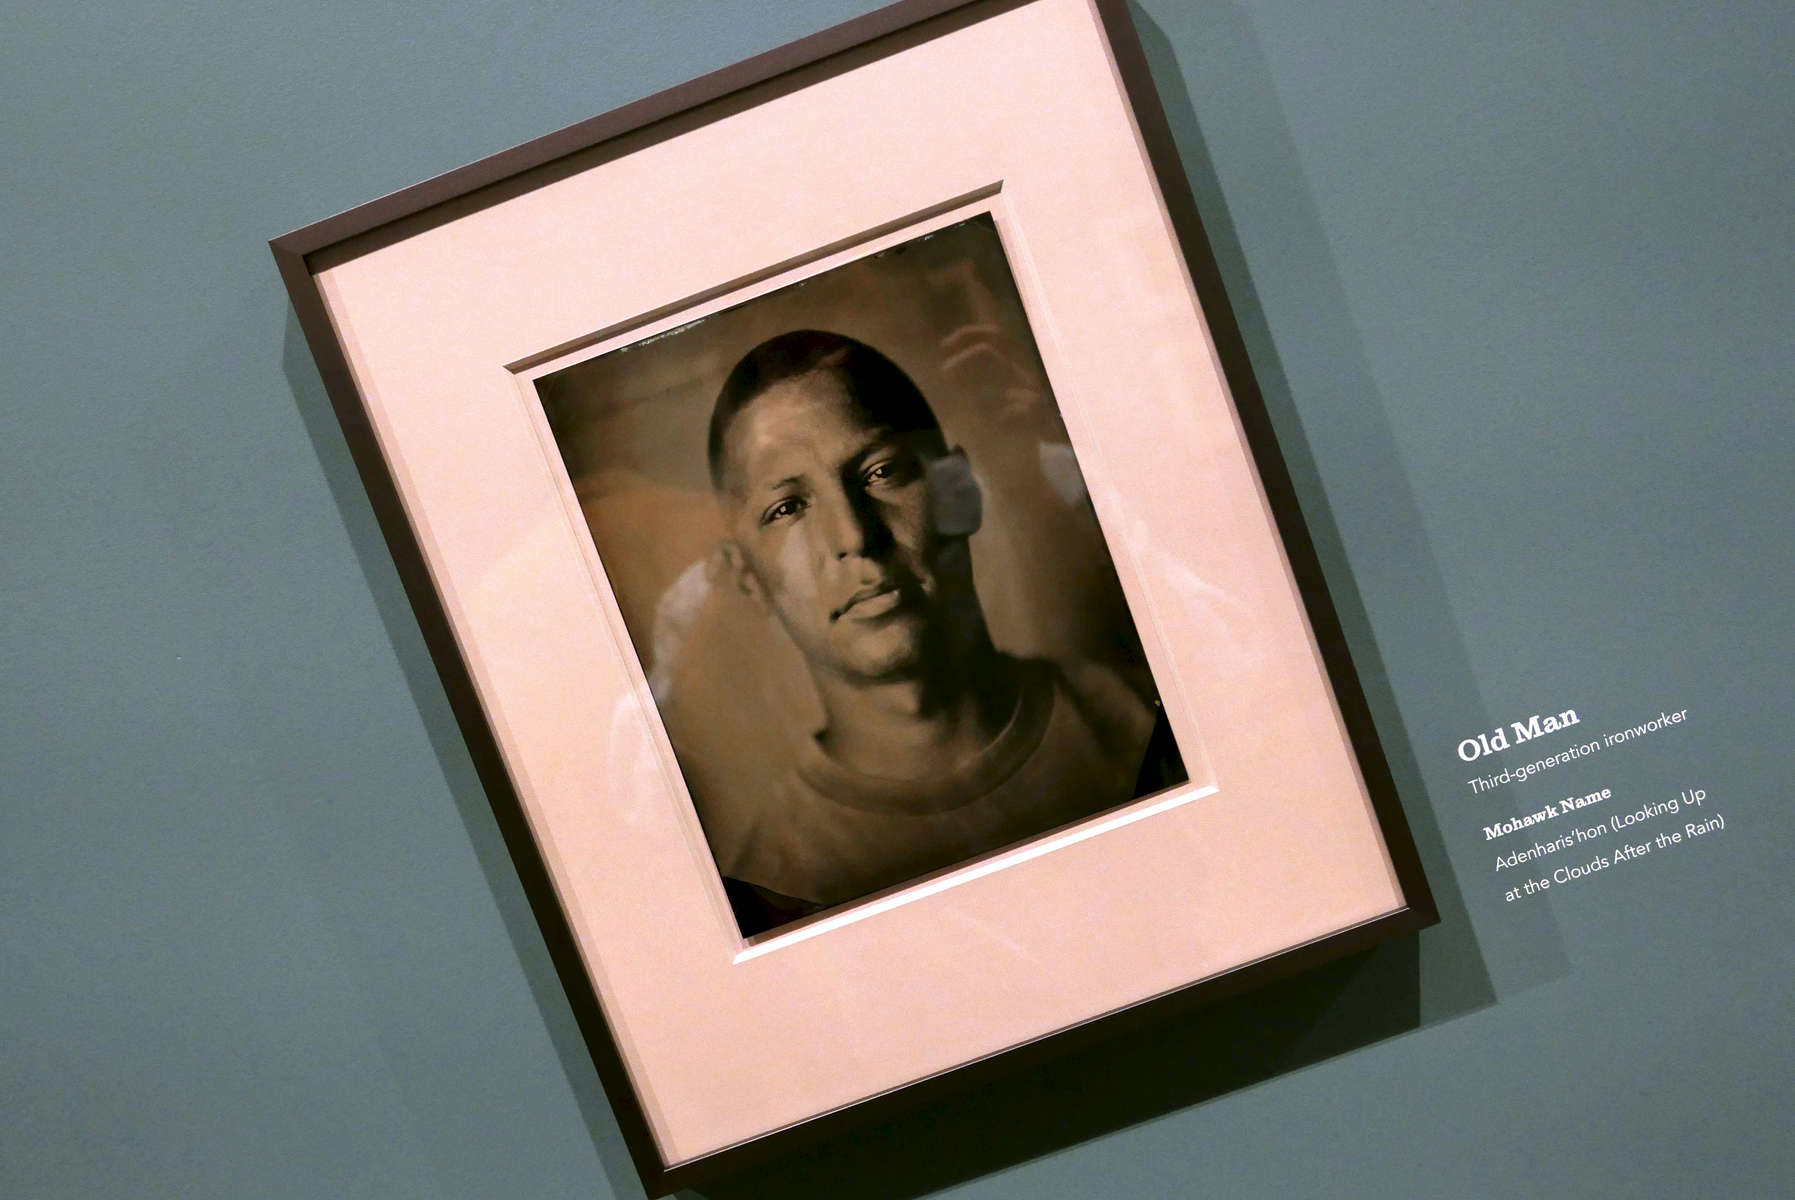 Tintype portrait of Mohawk iron worker {quote}Old Man{quote} in 9/11 Memorial and Museum, by photographer Melissa Cacciola. Jon Chase photo